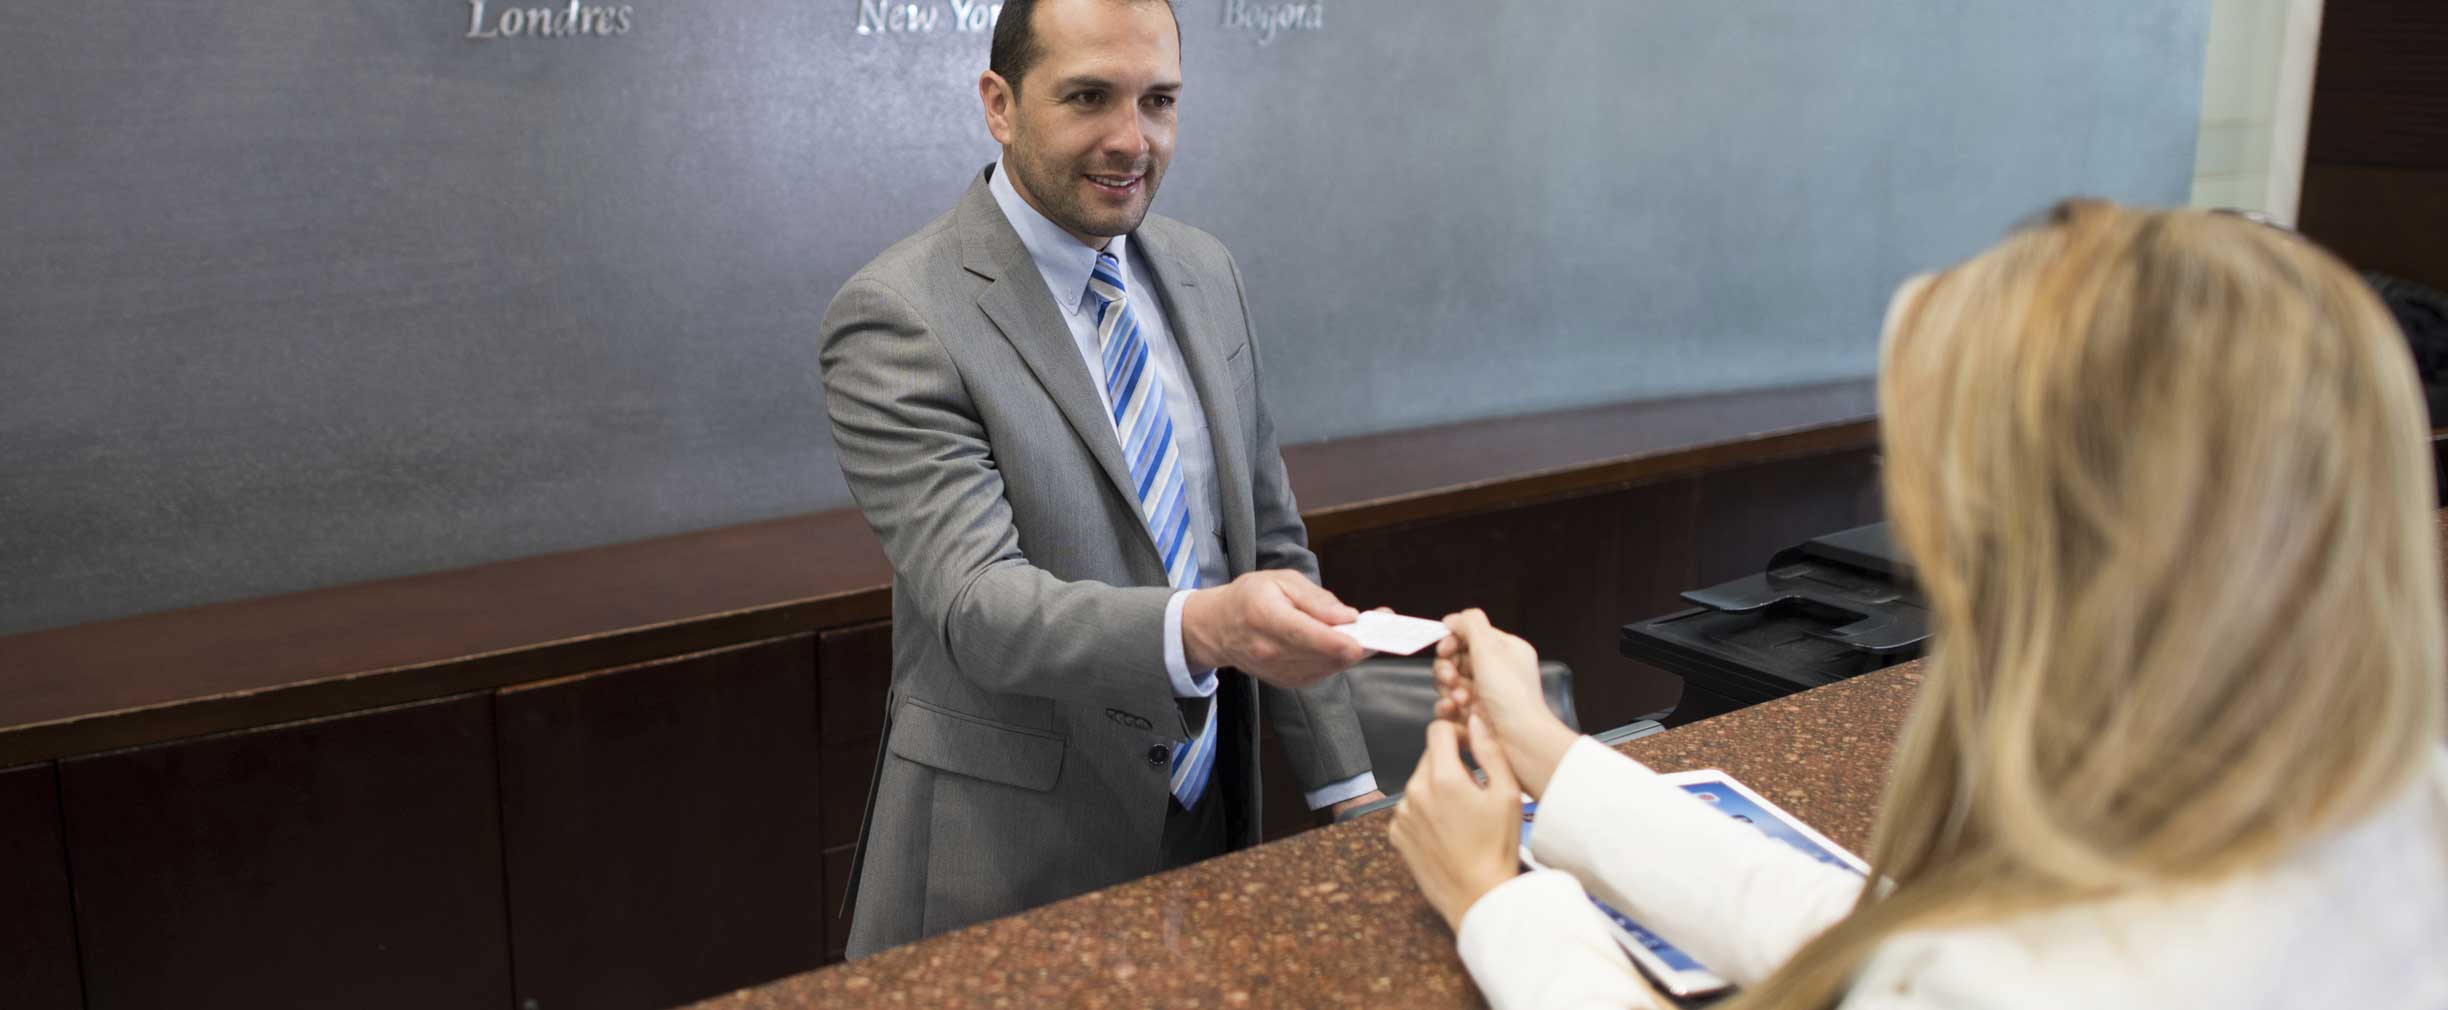 Benefits of Using a Credit Card When You Travel | Regions